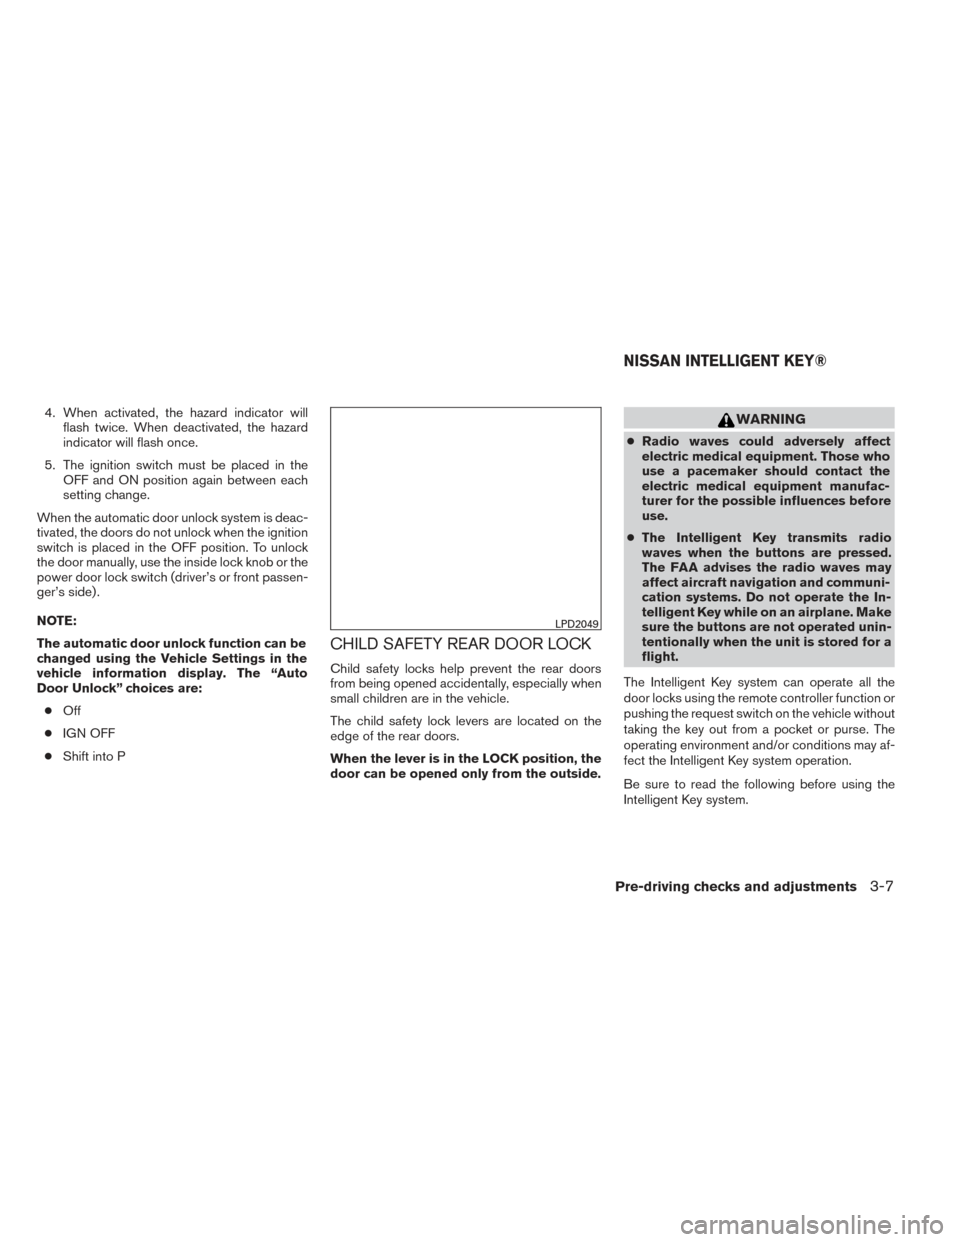 NISSAN PATHFINDER HYBRID 2014 R52 / 4.G Owners Manual, Page 237